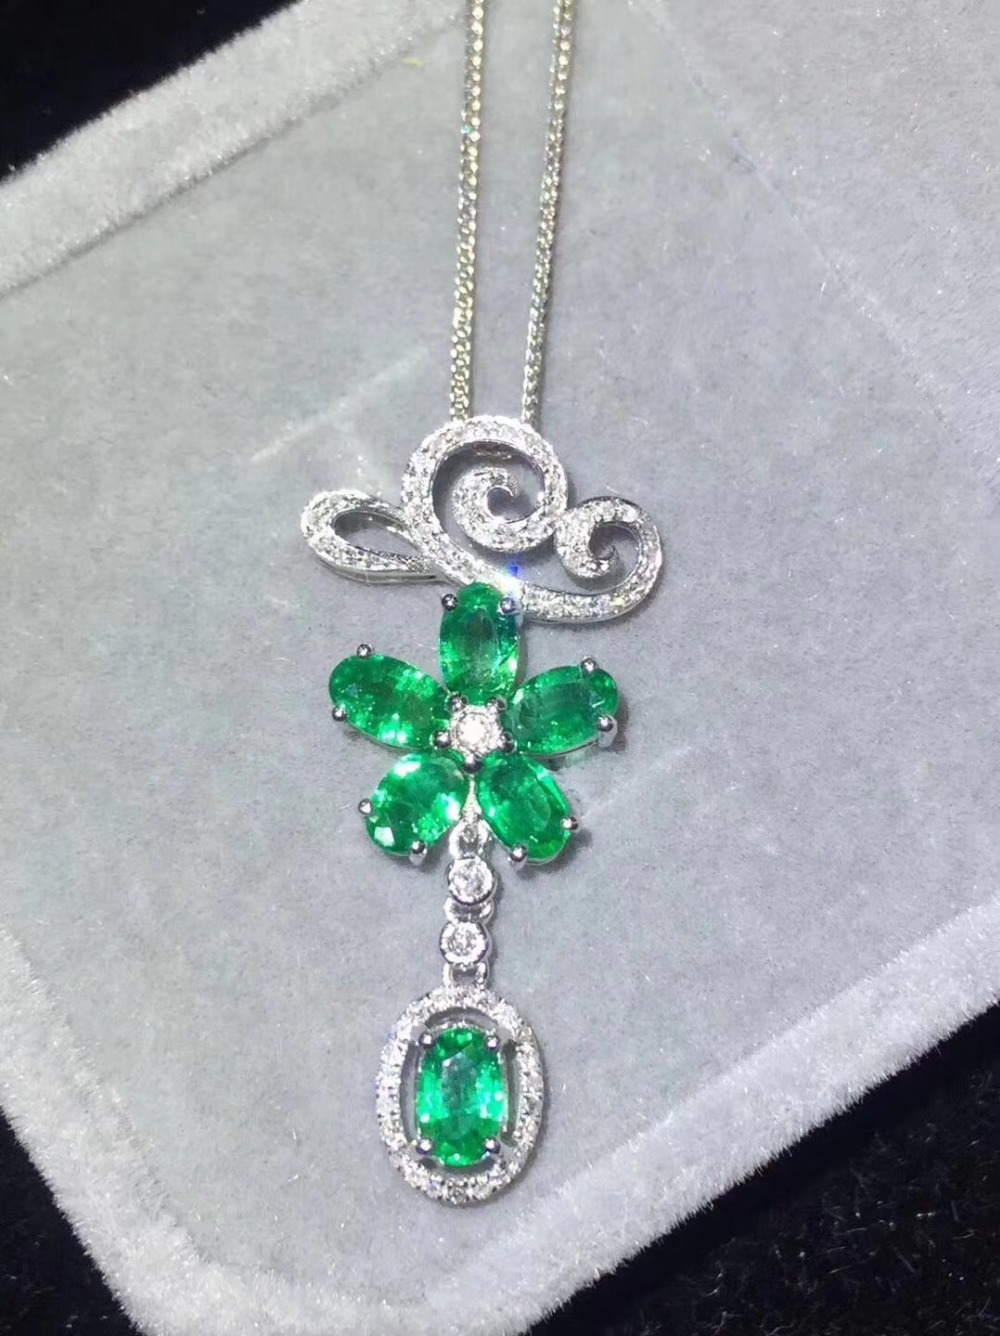 2019 New Qi Xuan_Colombian Green Stone Fashion Pendant Necklaces_Real Necklaces_Quality Guaranteed_Manufacturer Directly Sale 2019 New Qi Xuan_Colombian Green Stone Fashion Pendant Necklaces_Real Necklaces_Quality Guaranteed_Manufacturer Directly Sale